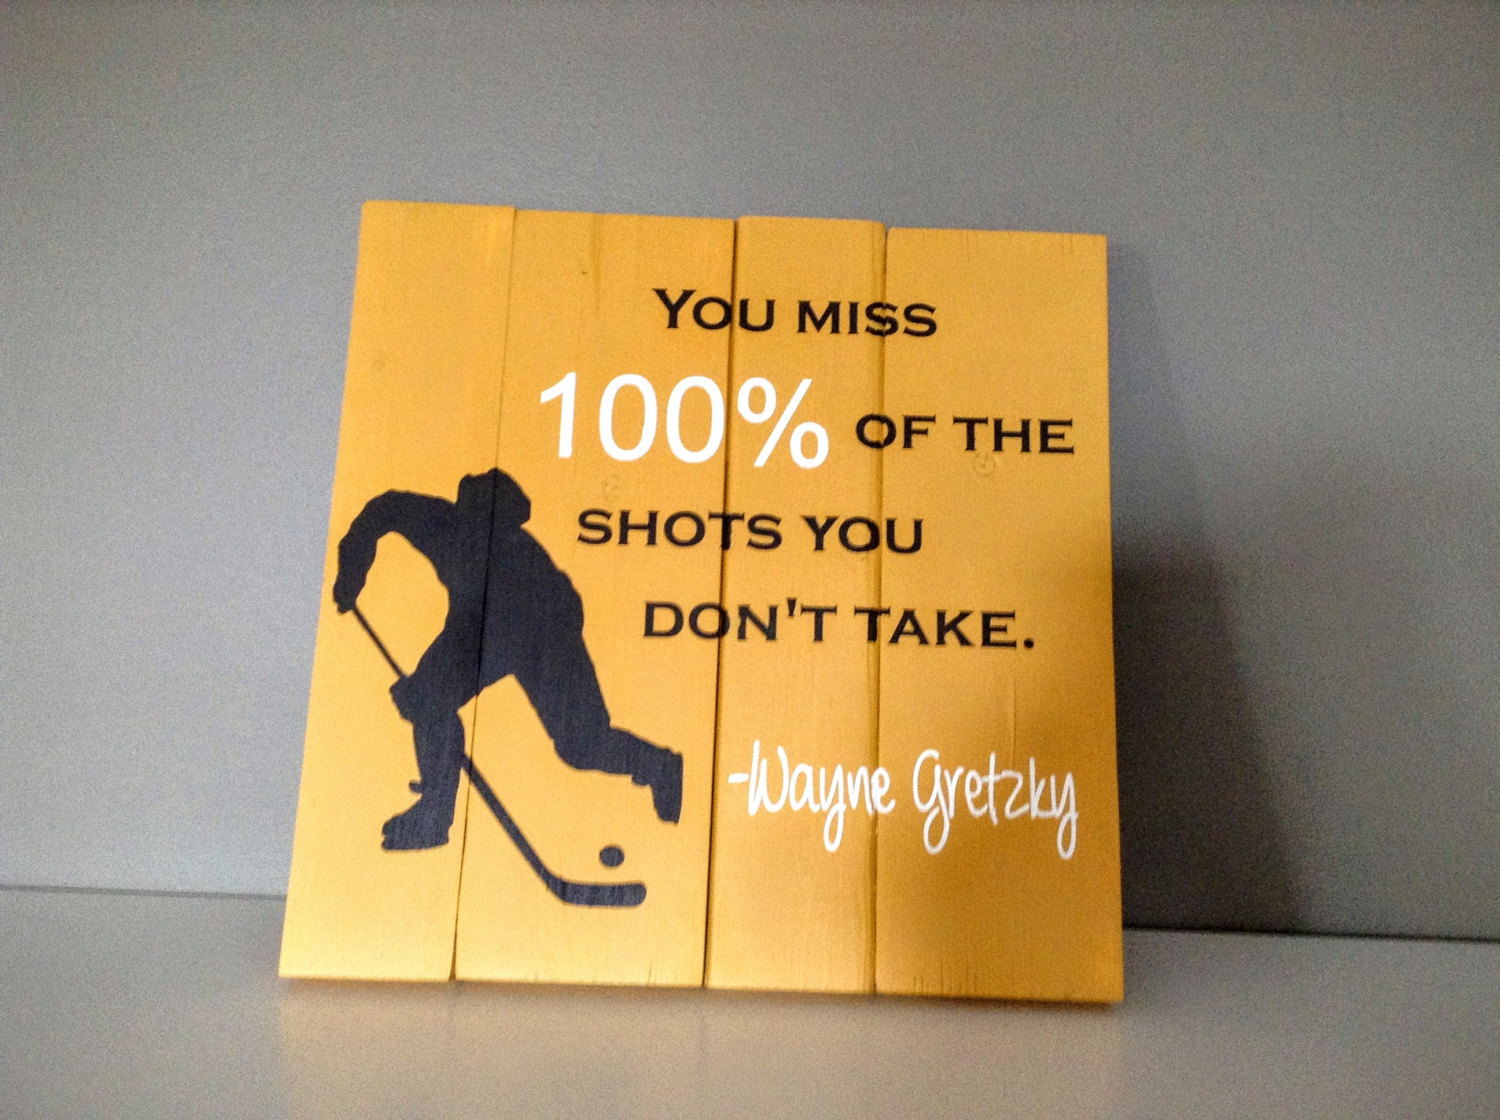 Hockey Home Decor - Rink Rater App - Hockey Rink Reviews by YOU